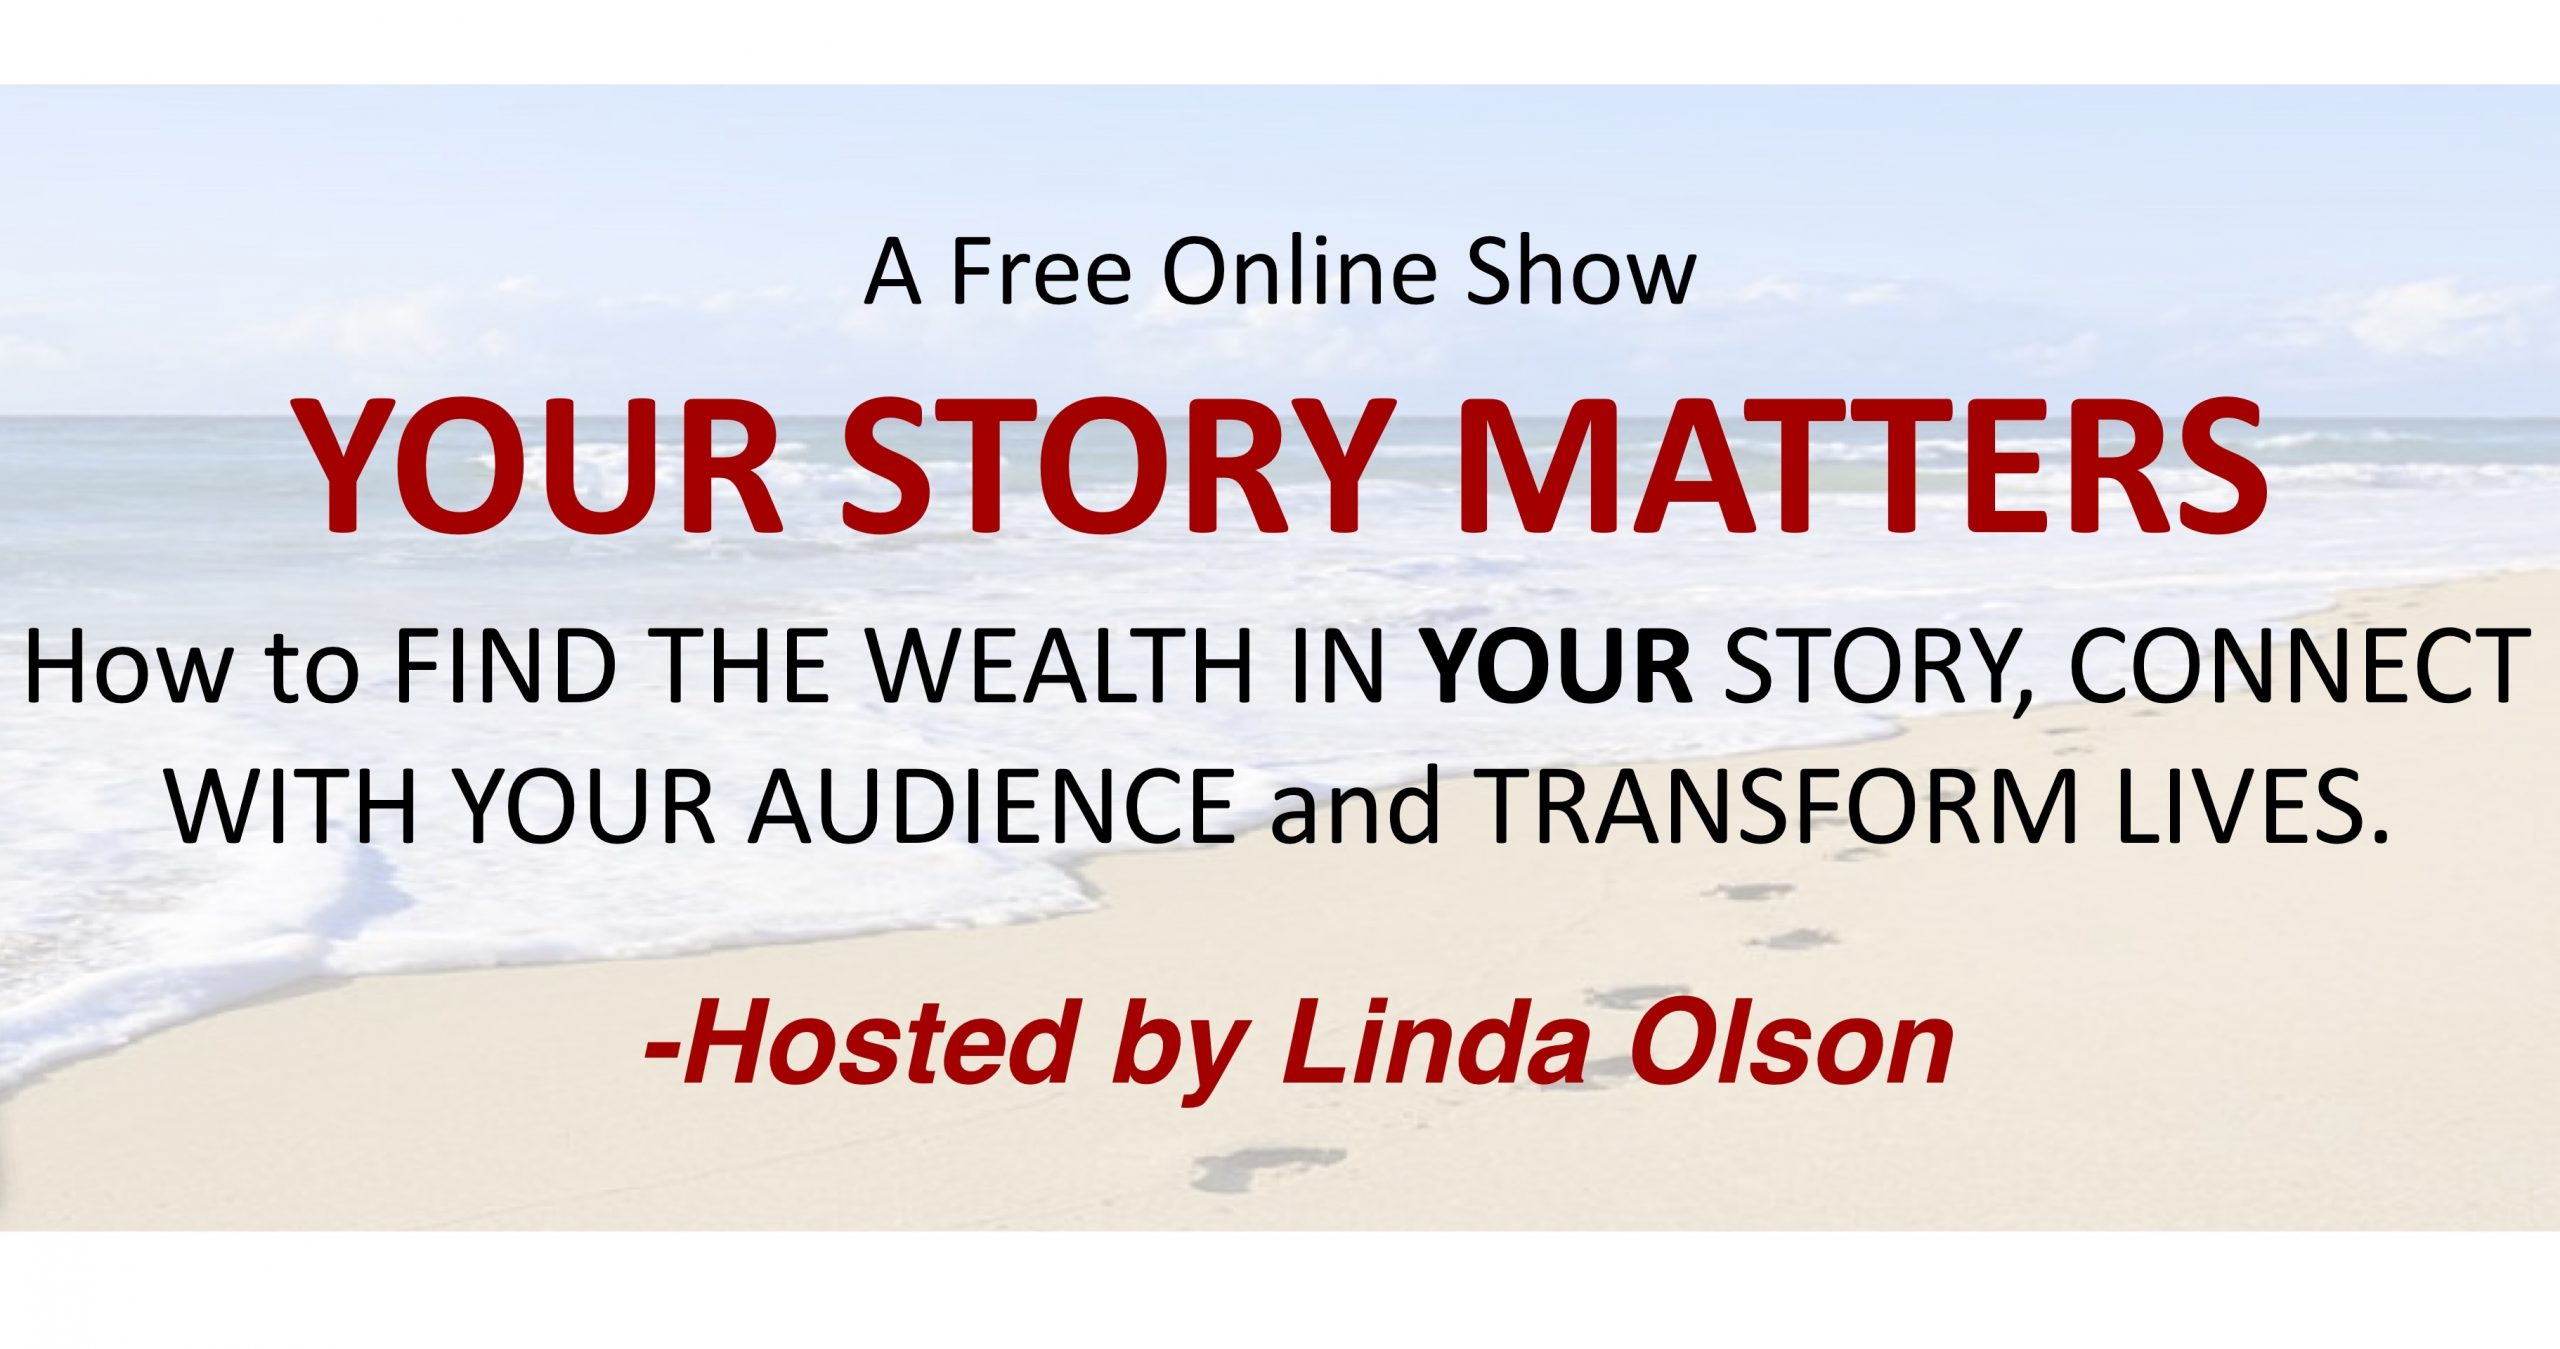 Your Story Matters Online Show Free